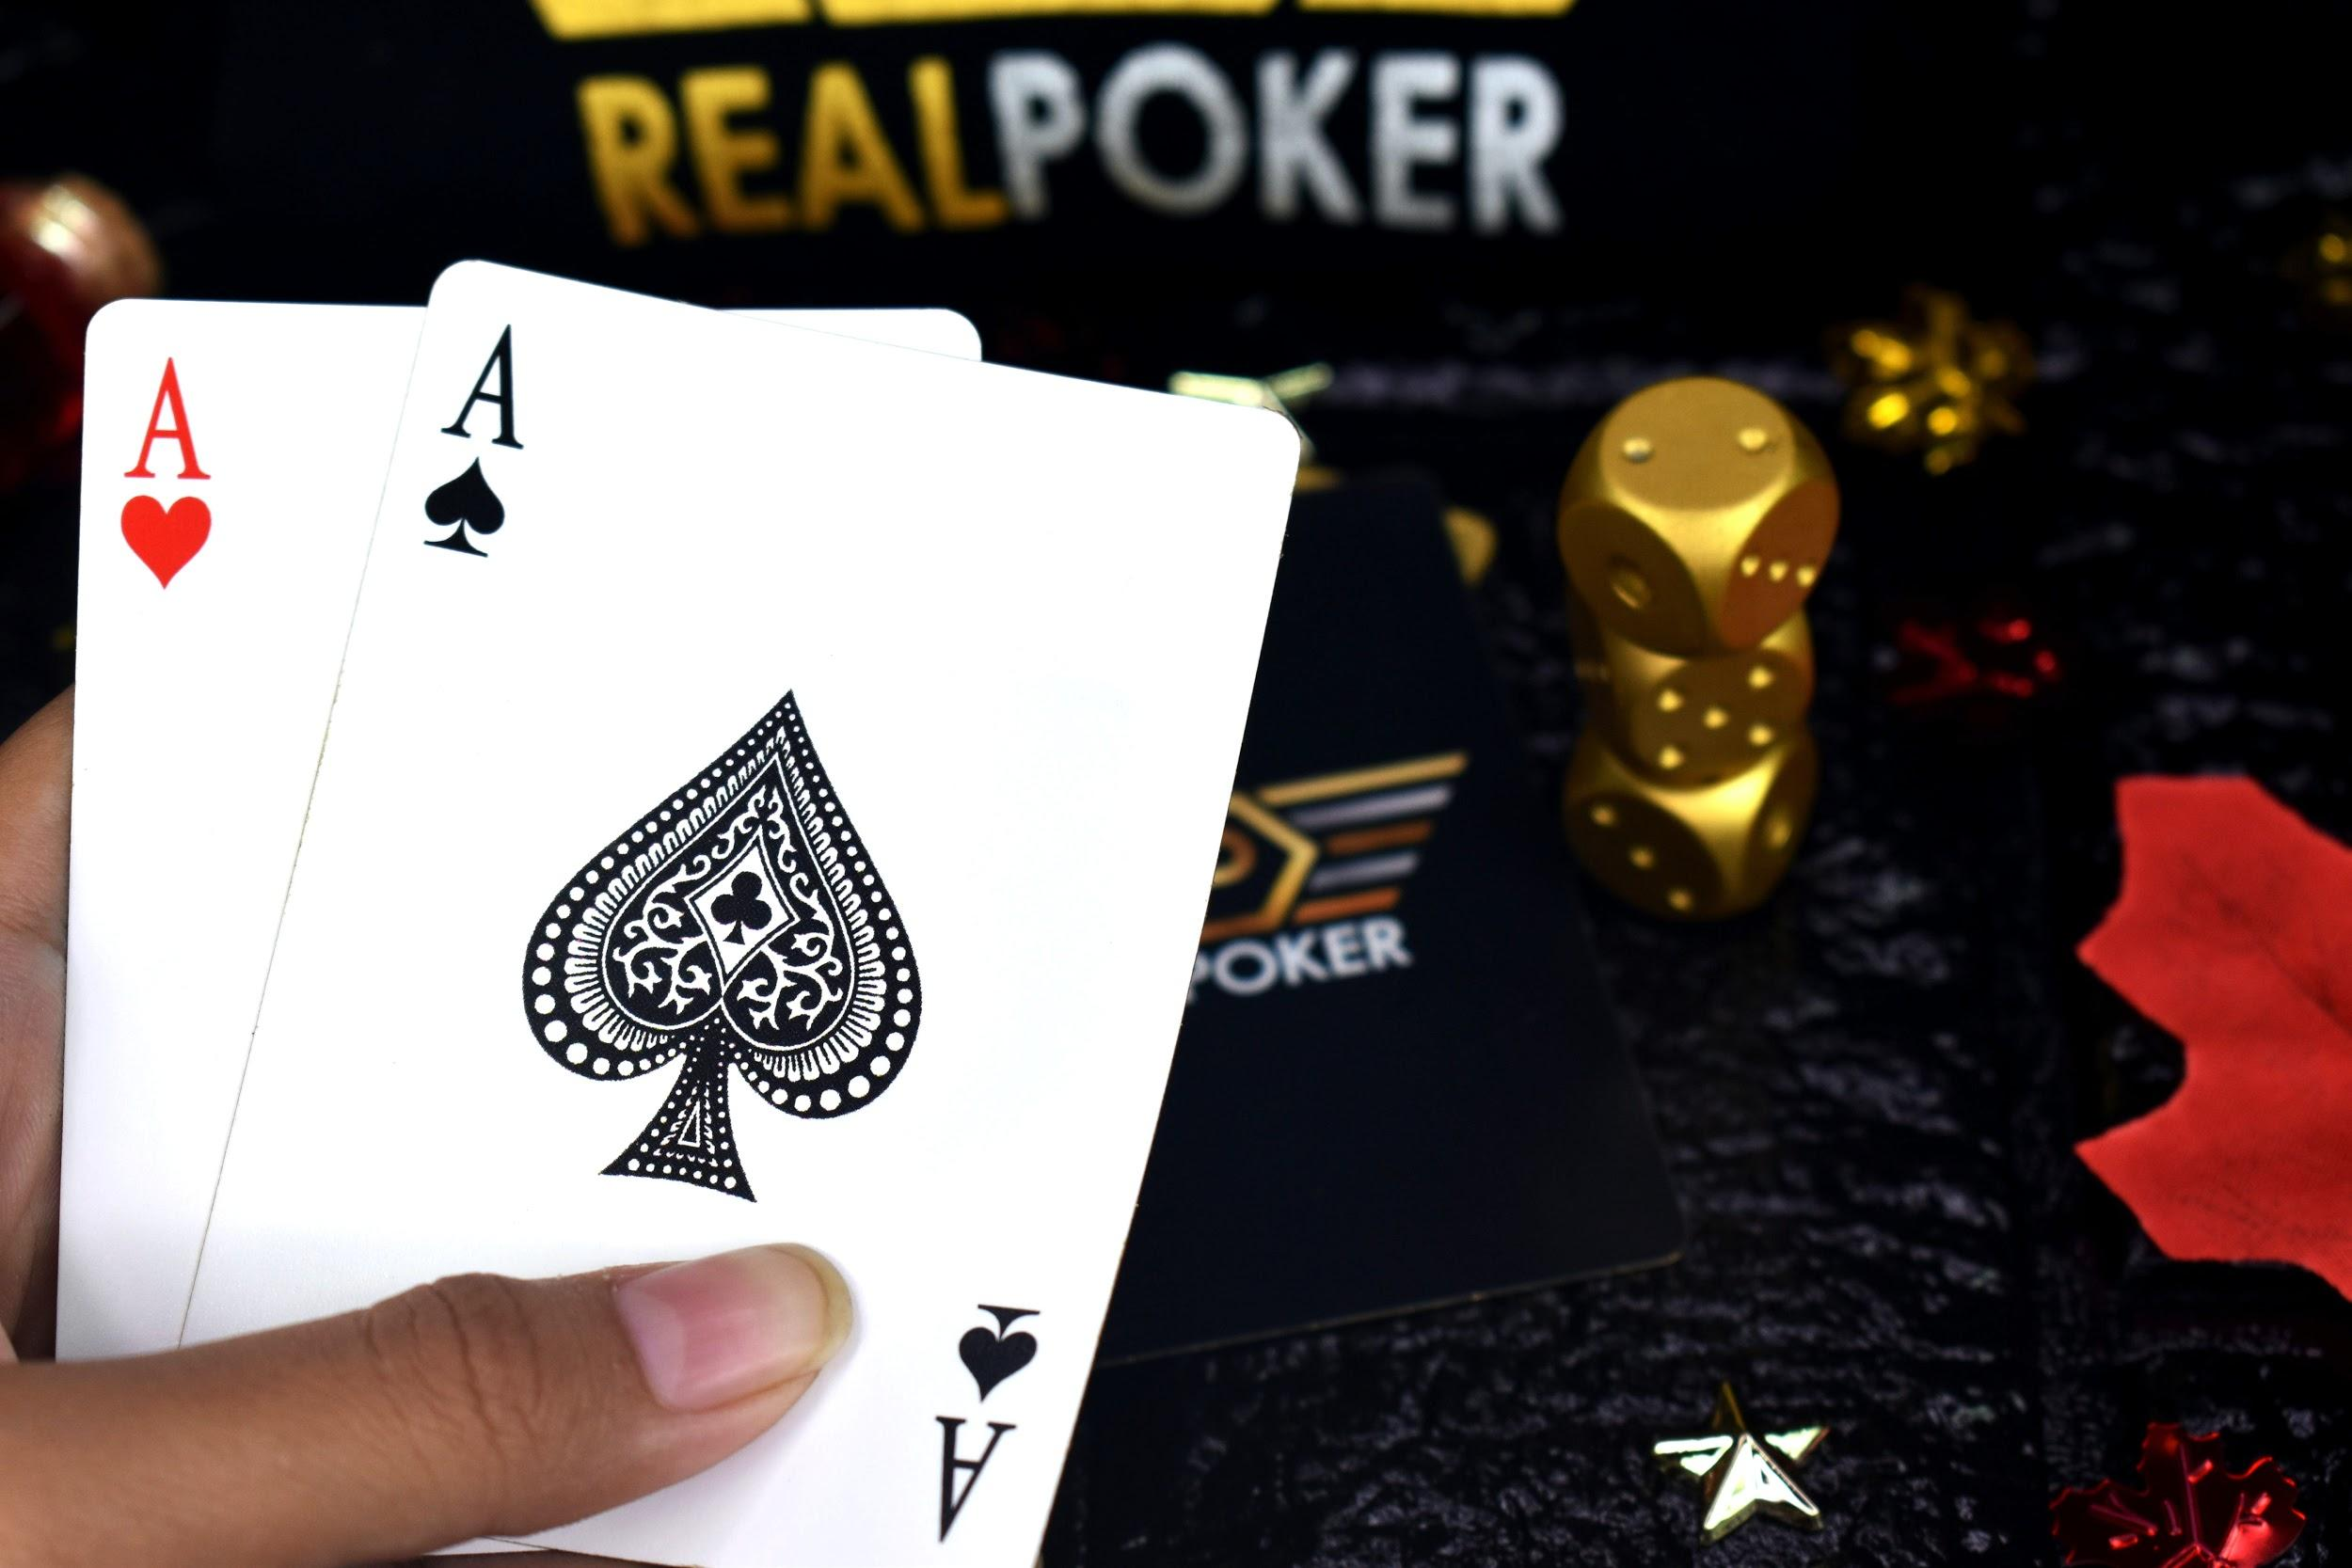 Poker Site That Accept Cashtocode: What Are the Benefits and How to Use It?